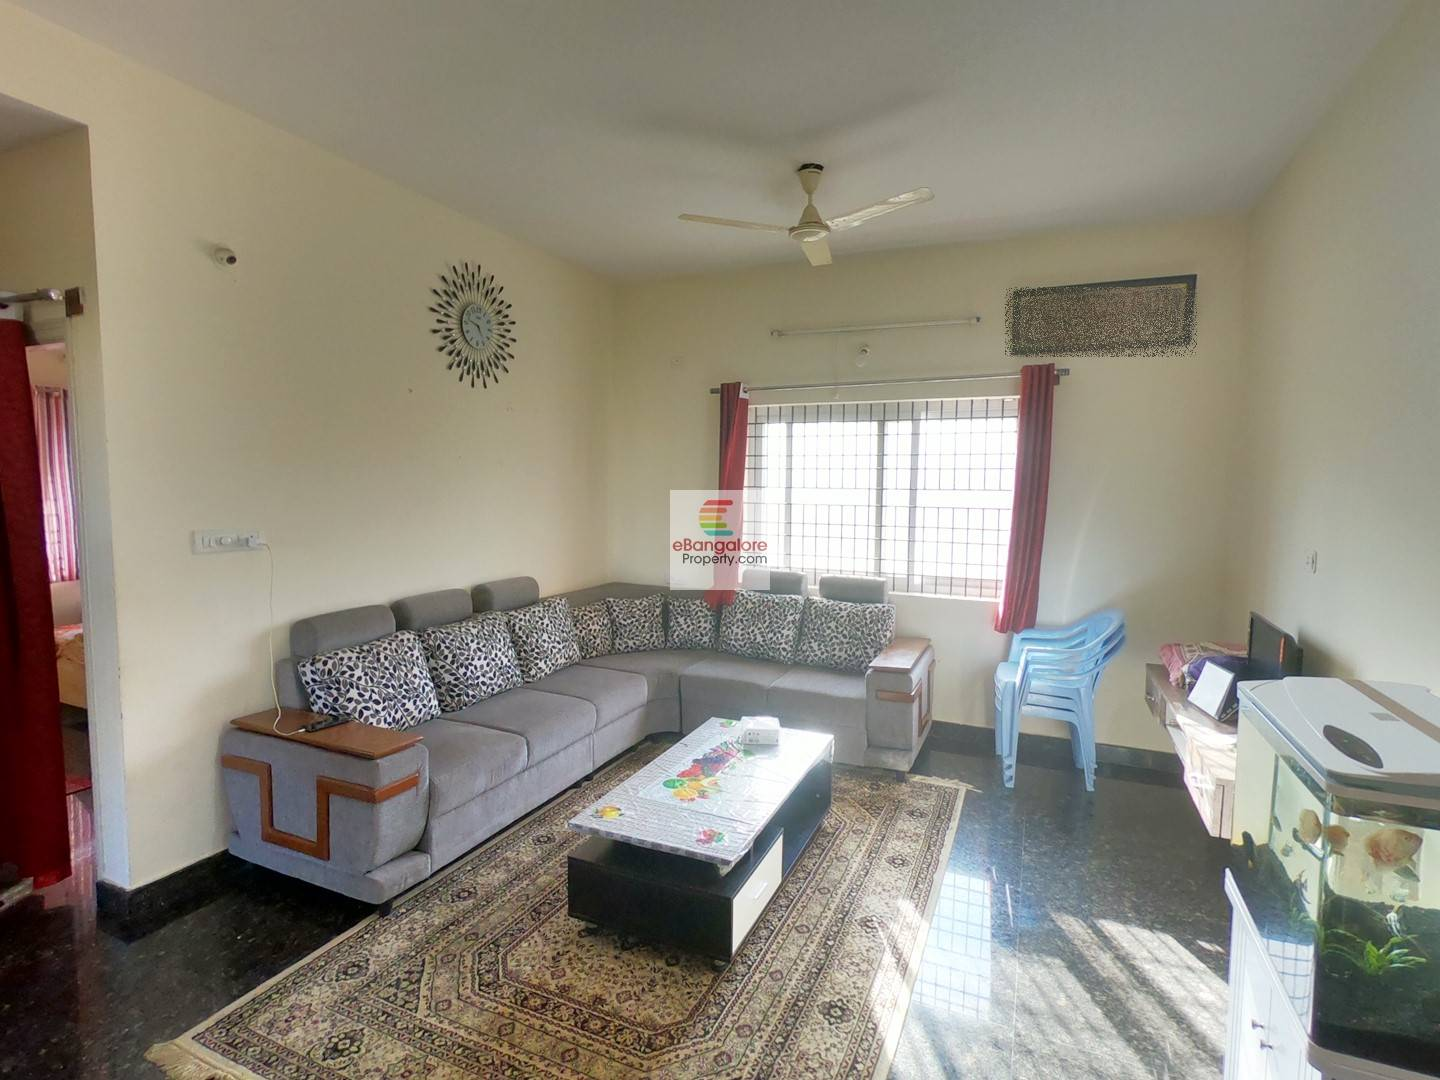 RT Nagar Extension – Multi Unit Building For Sale with 4 Units of 3BHK – A Khata